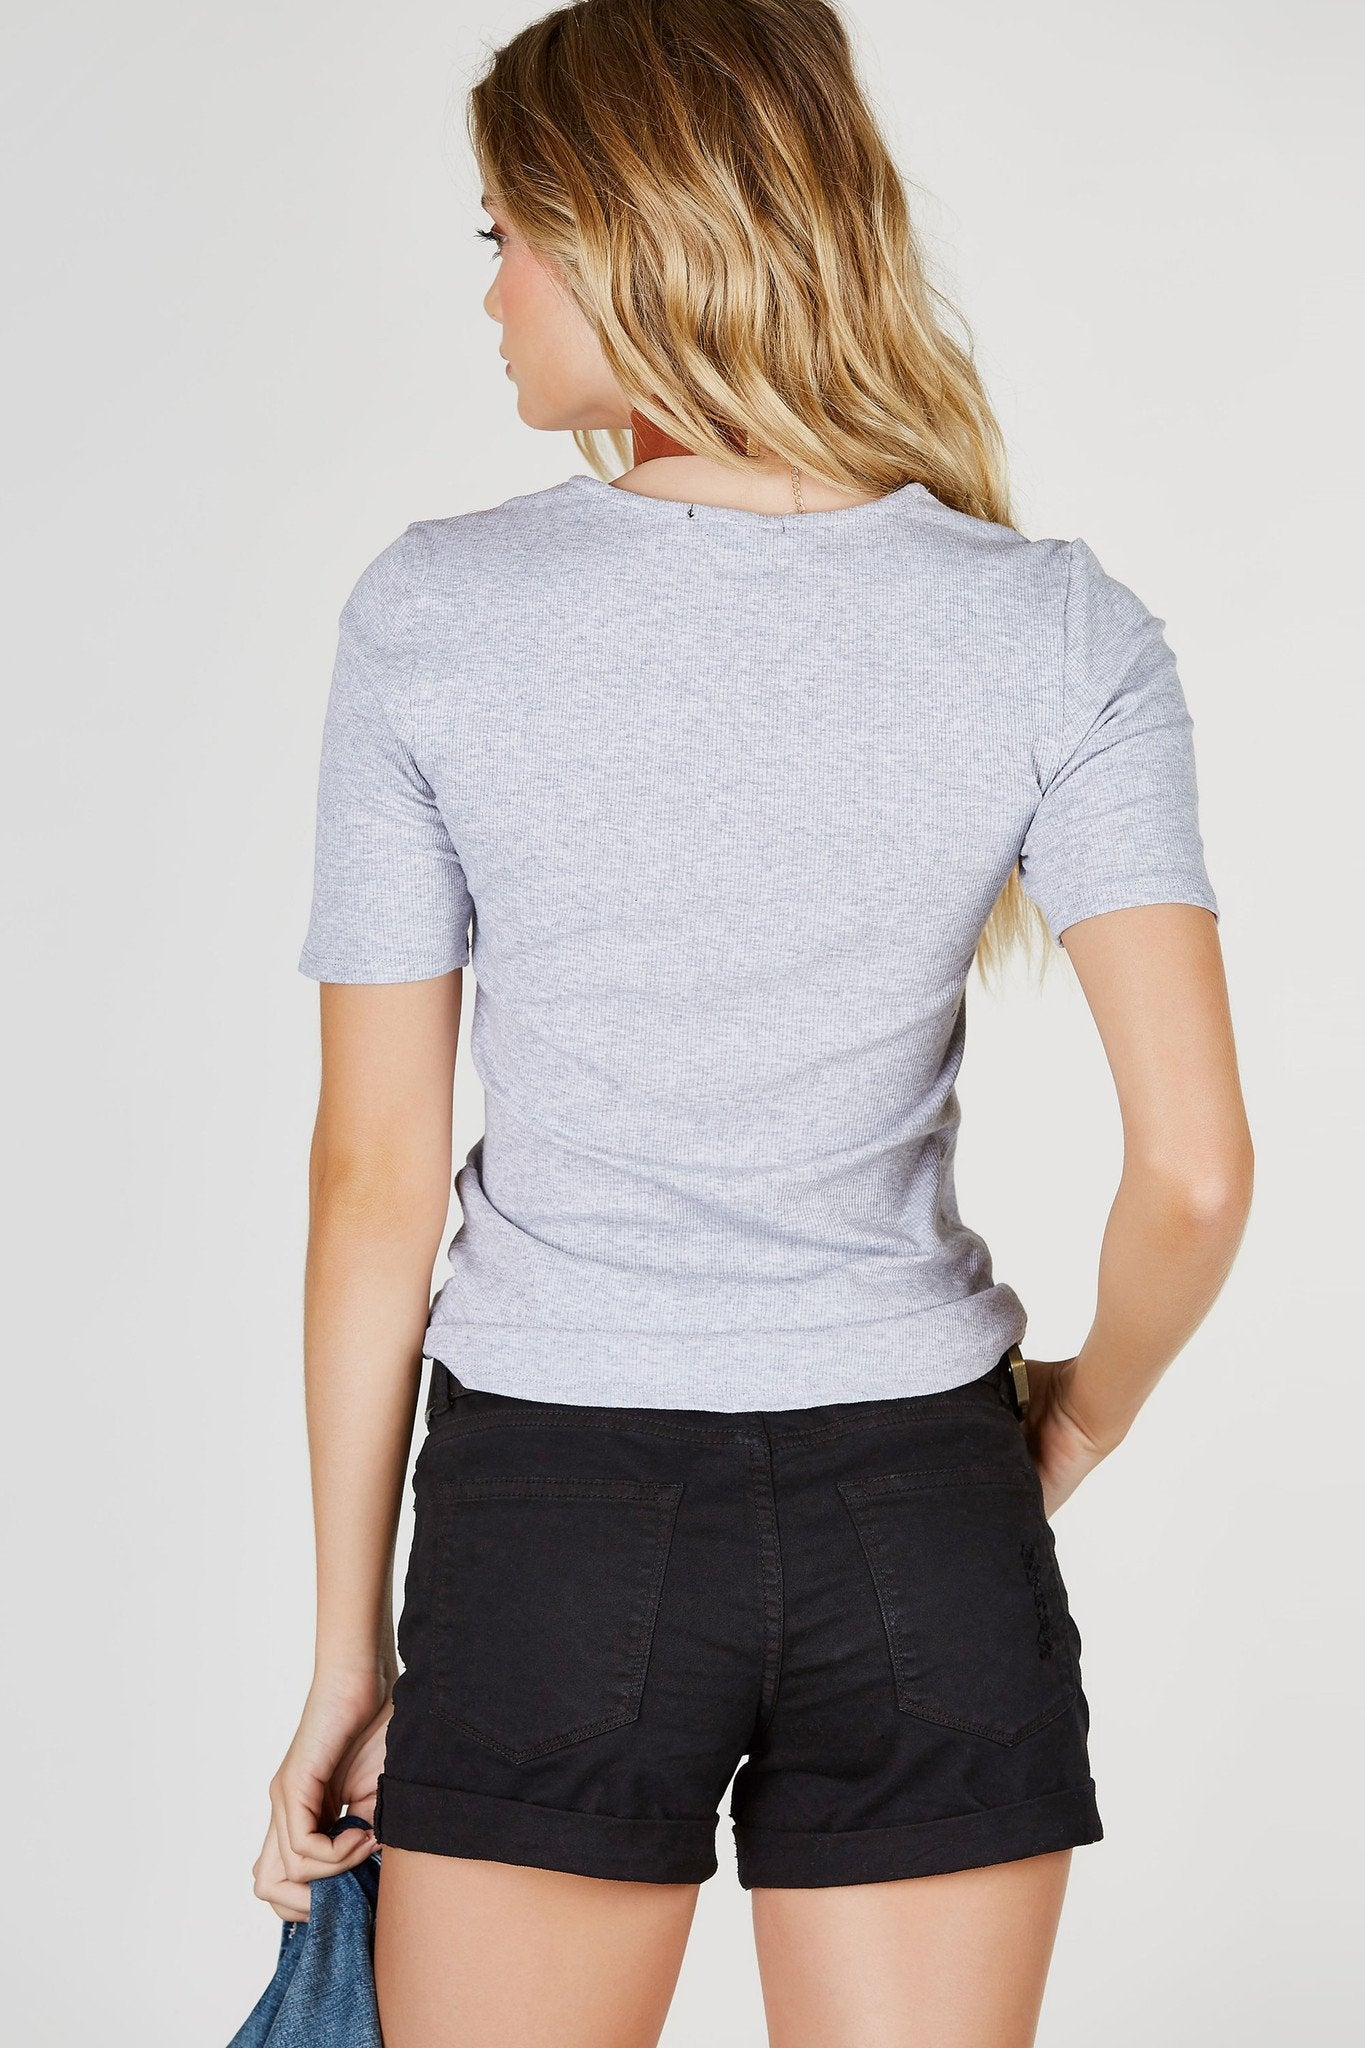 A classic ribbed short sleeve tee with a trendy lace up neckline. Lightweight and stretchy, great for all day wear. Tuck into high waist skinnies for a daytime look or pair with a midi skirt for a chic evening look!